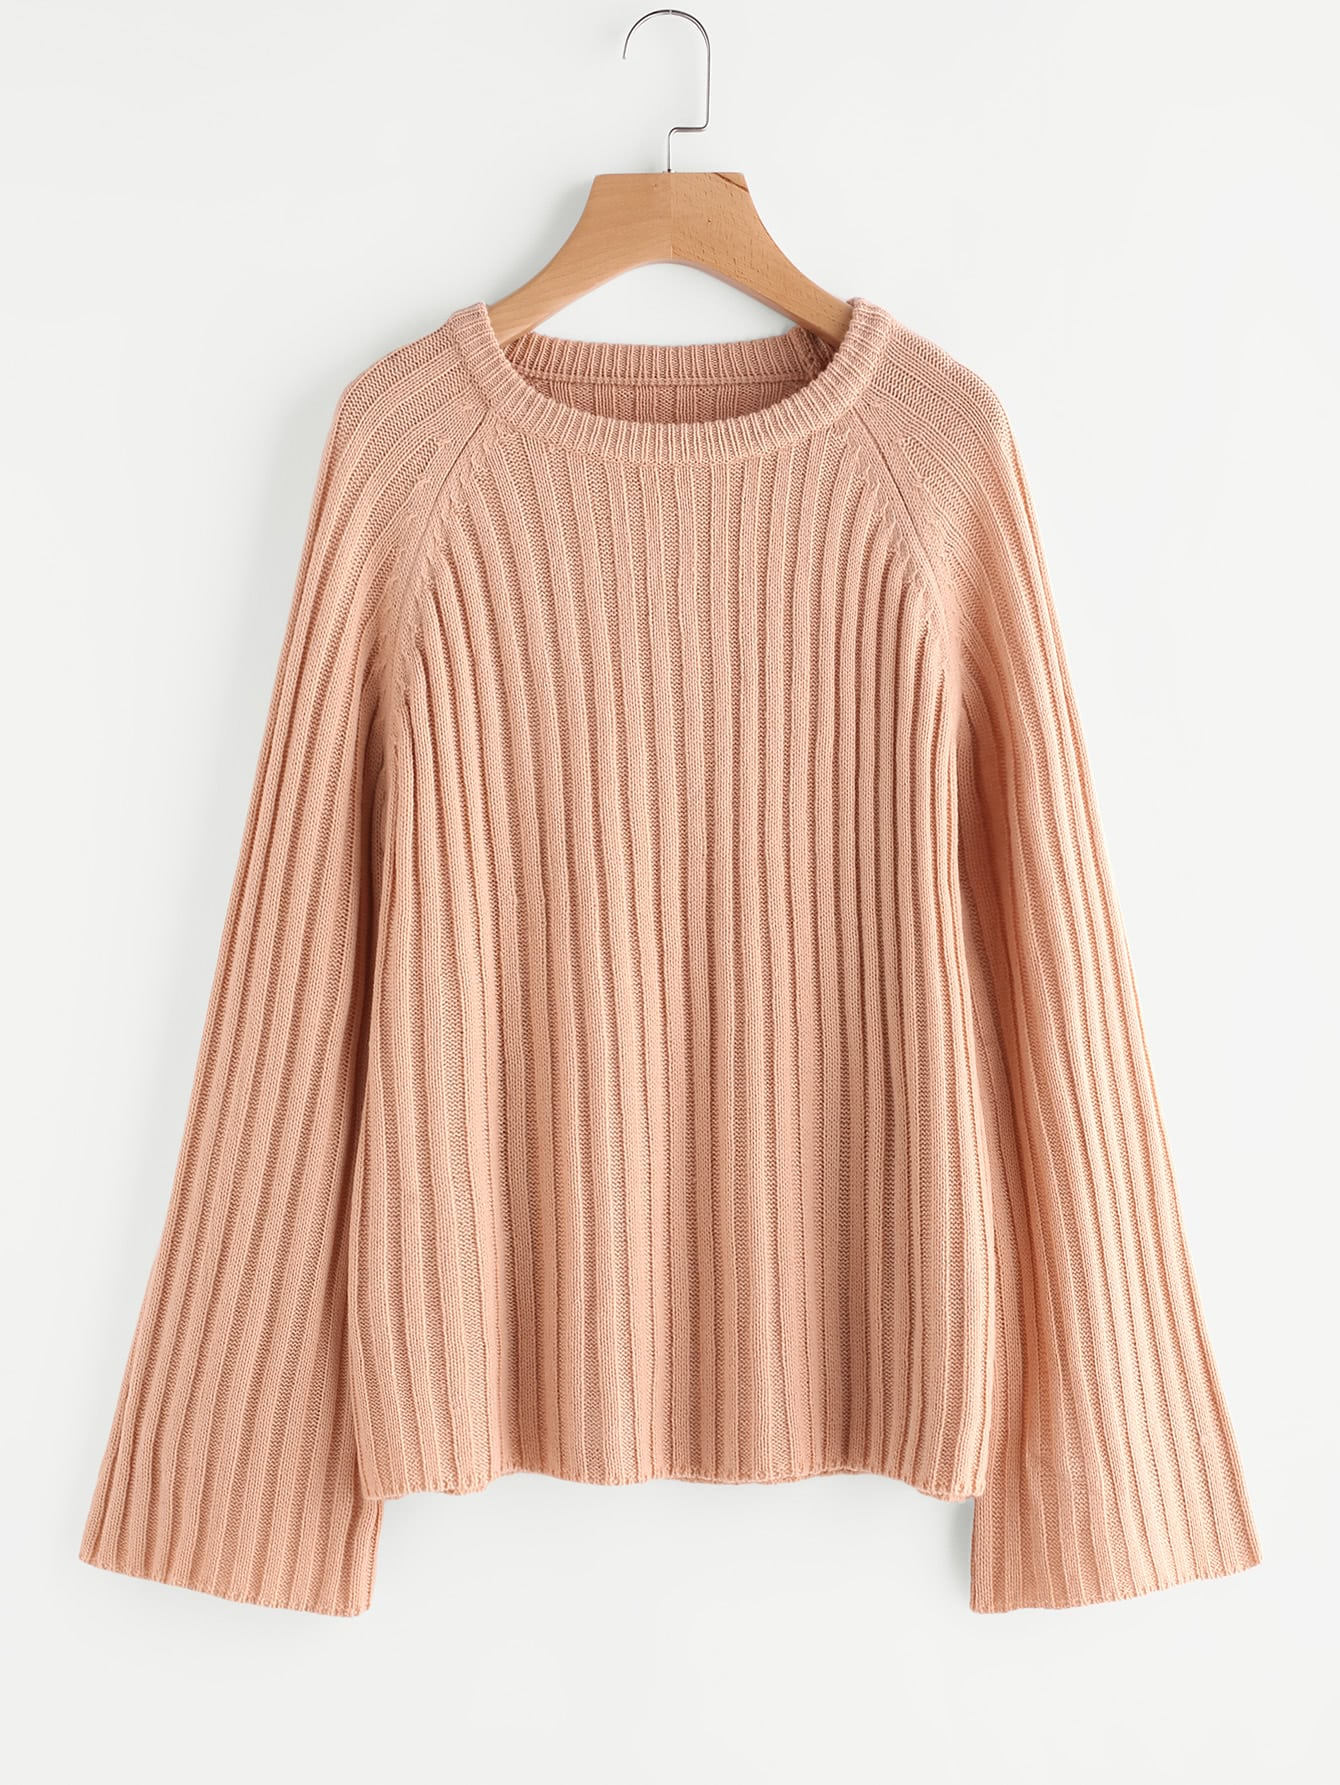 Rib Knit Fluted Sleeve Jumper sweater170629478